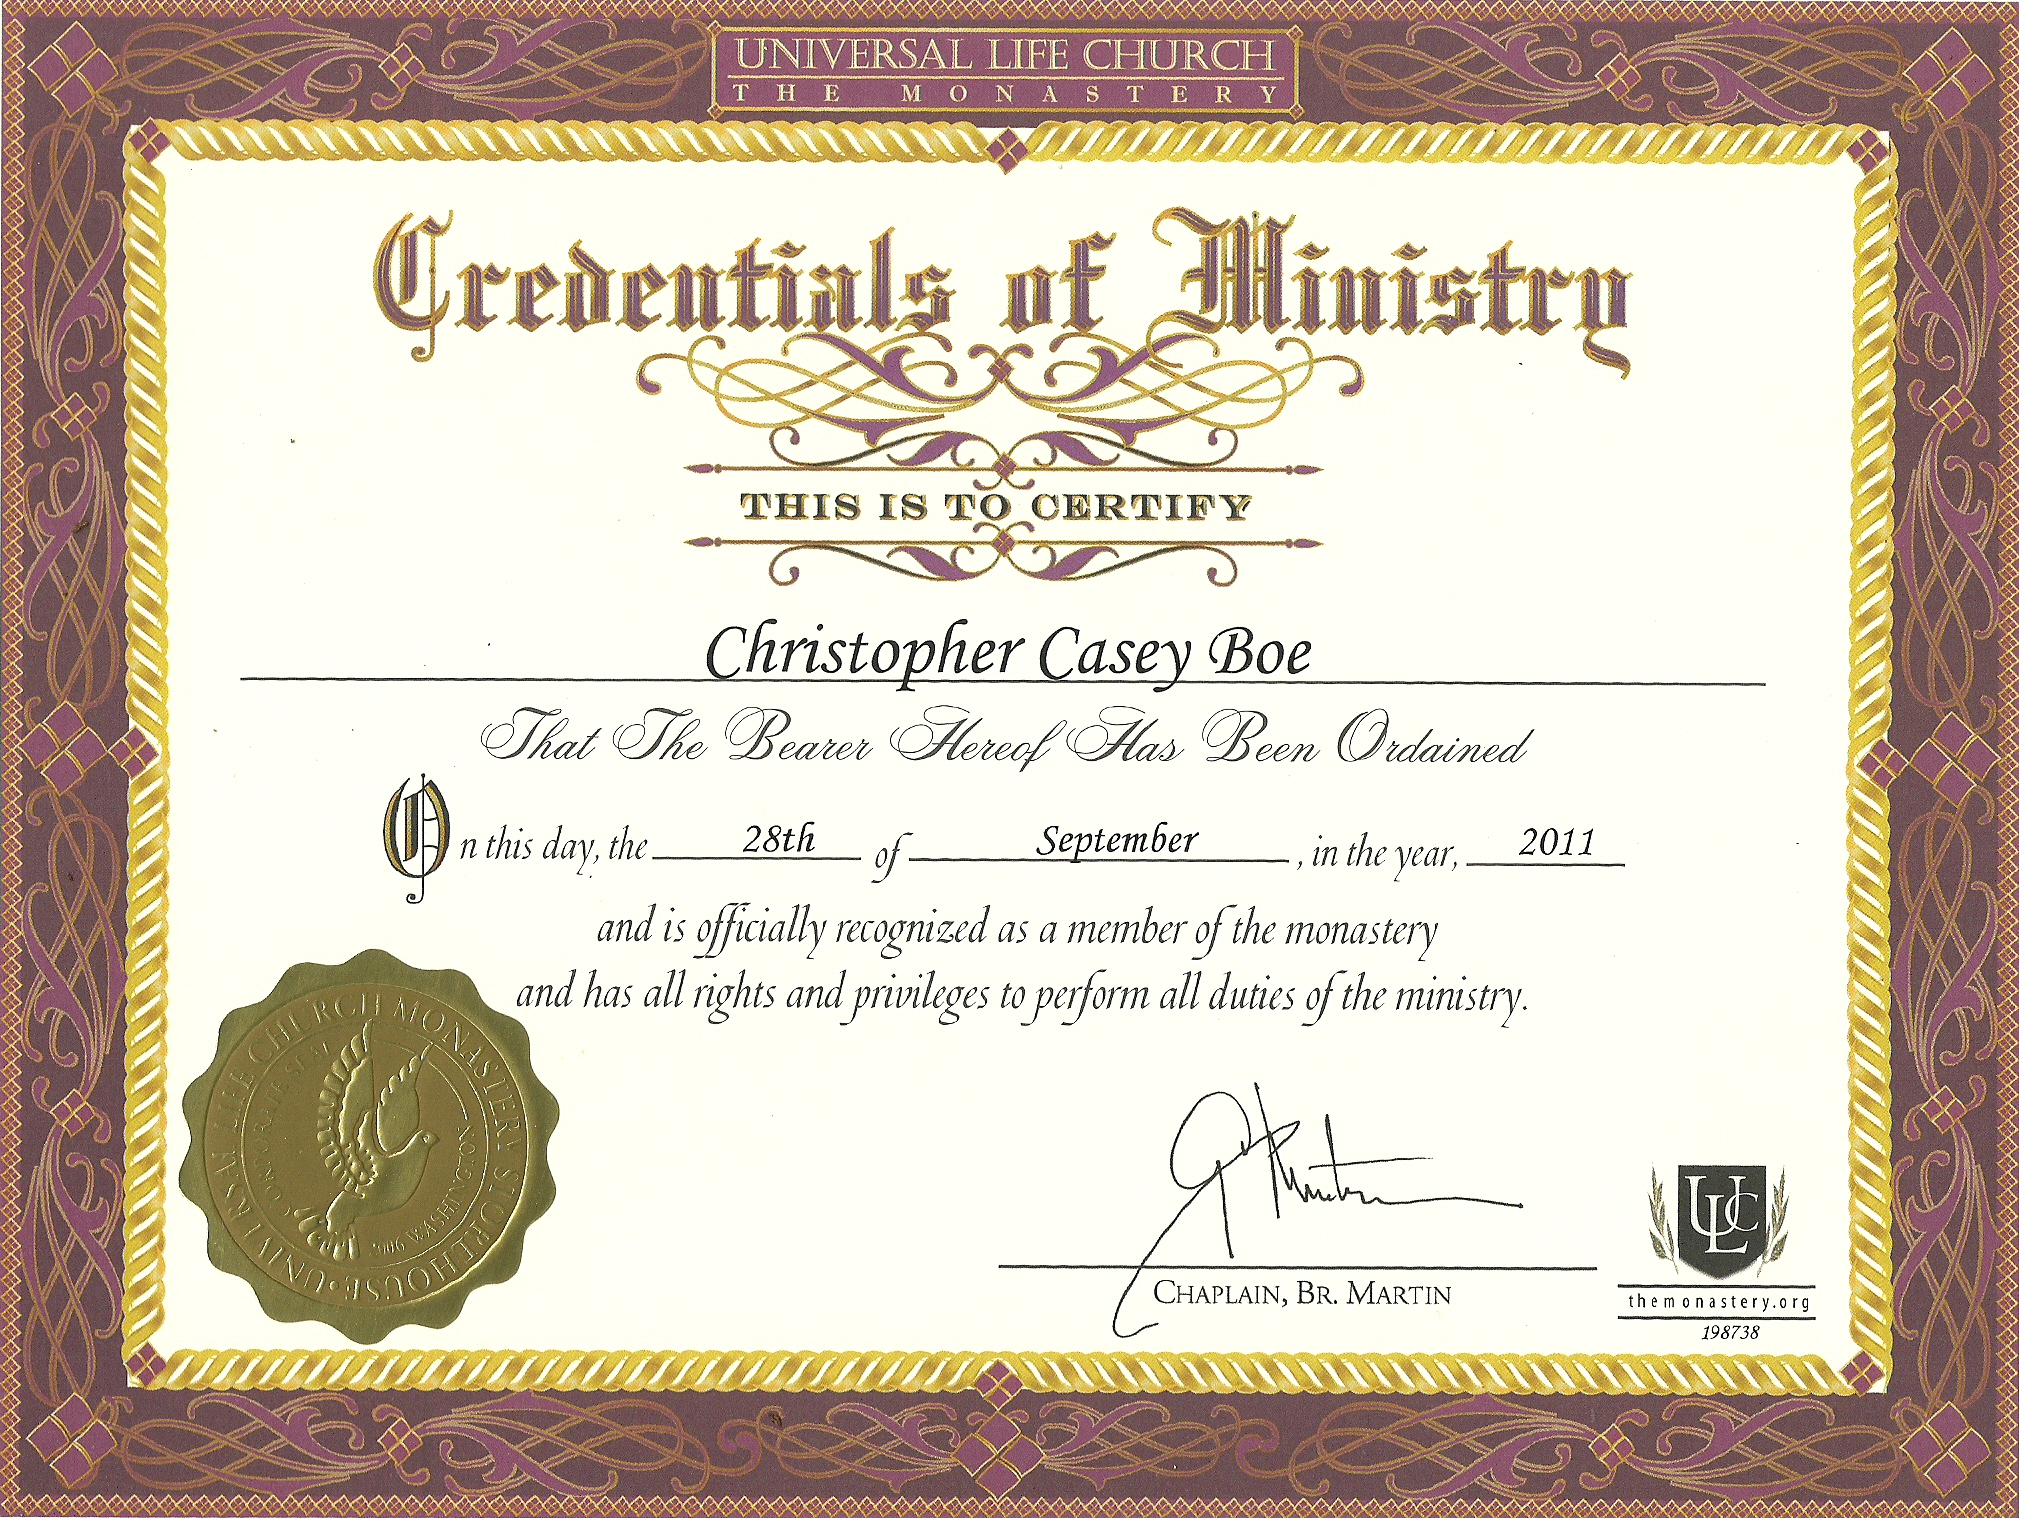 Credentials of ministry bhemian for Minister license certificate template